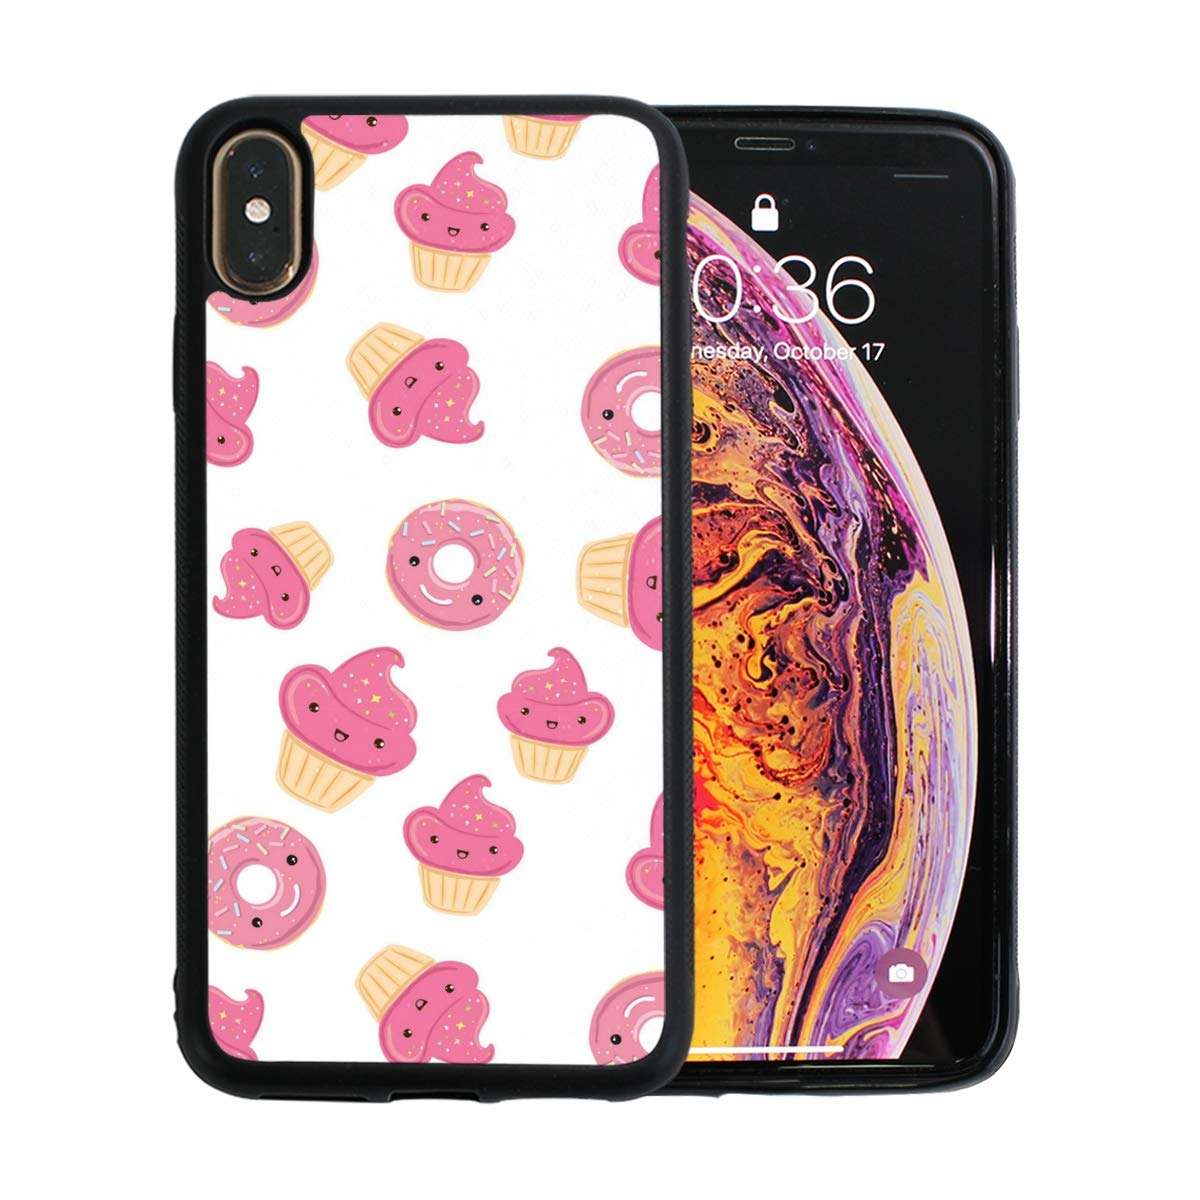 Pink Stars Cake Decorations Designed for Apple iPhone Xs MAX Case Scratch-Resistant Ultra-Thin Case